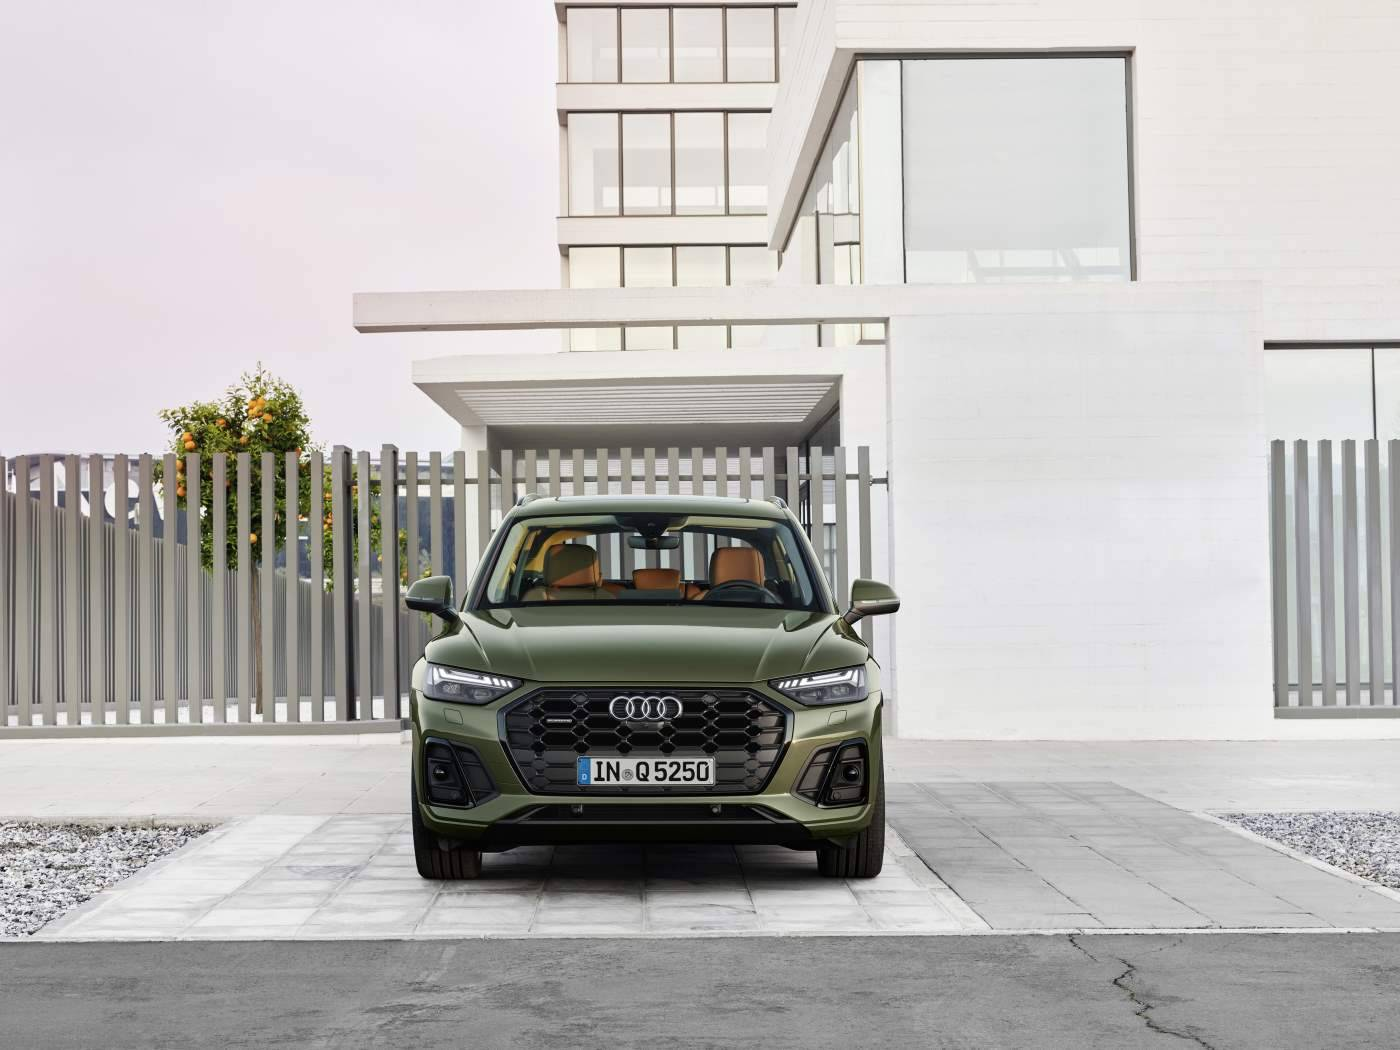 Audi Q5 2020 face photo design